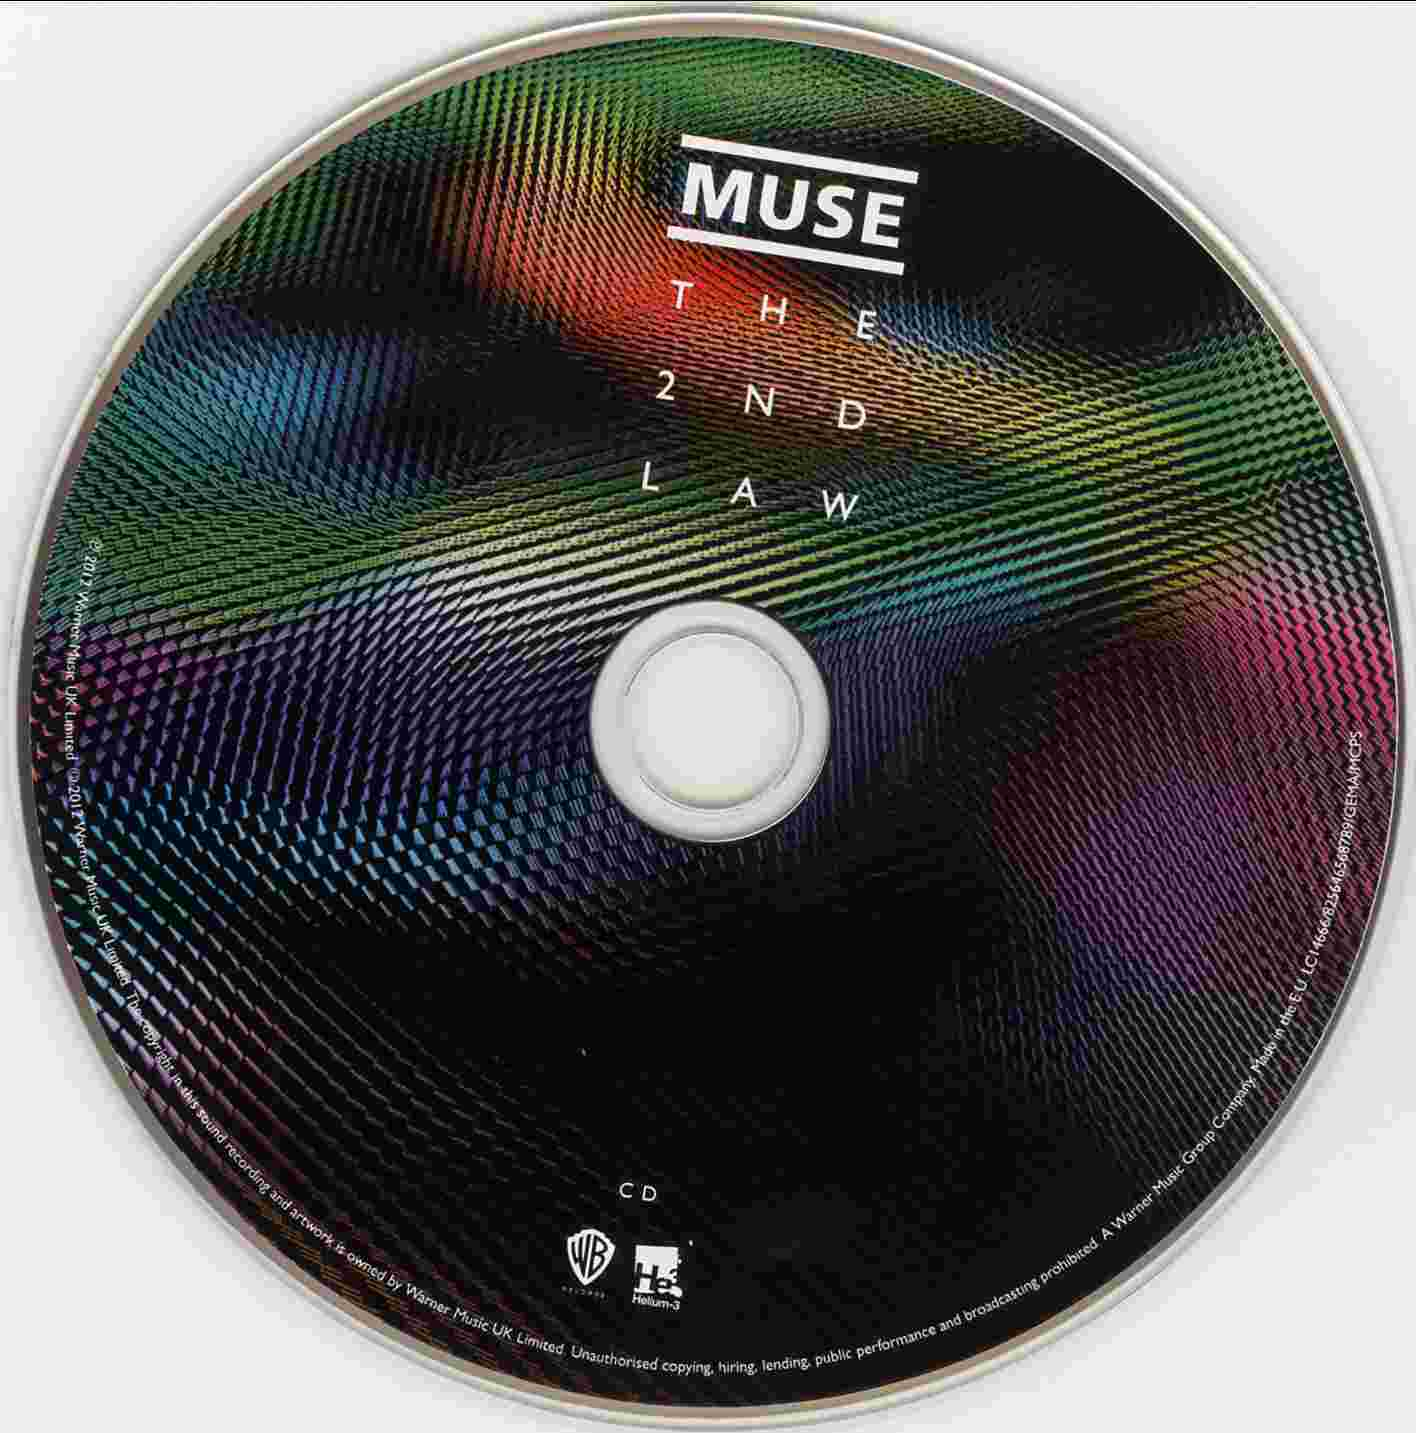 Muse The 2nd Law Cd | www.imgkid.com - The Image Kid Has It!